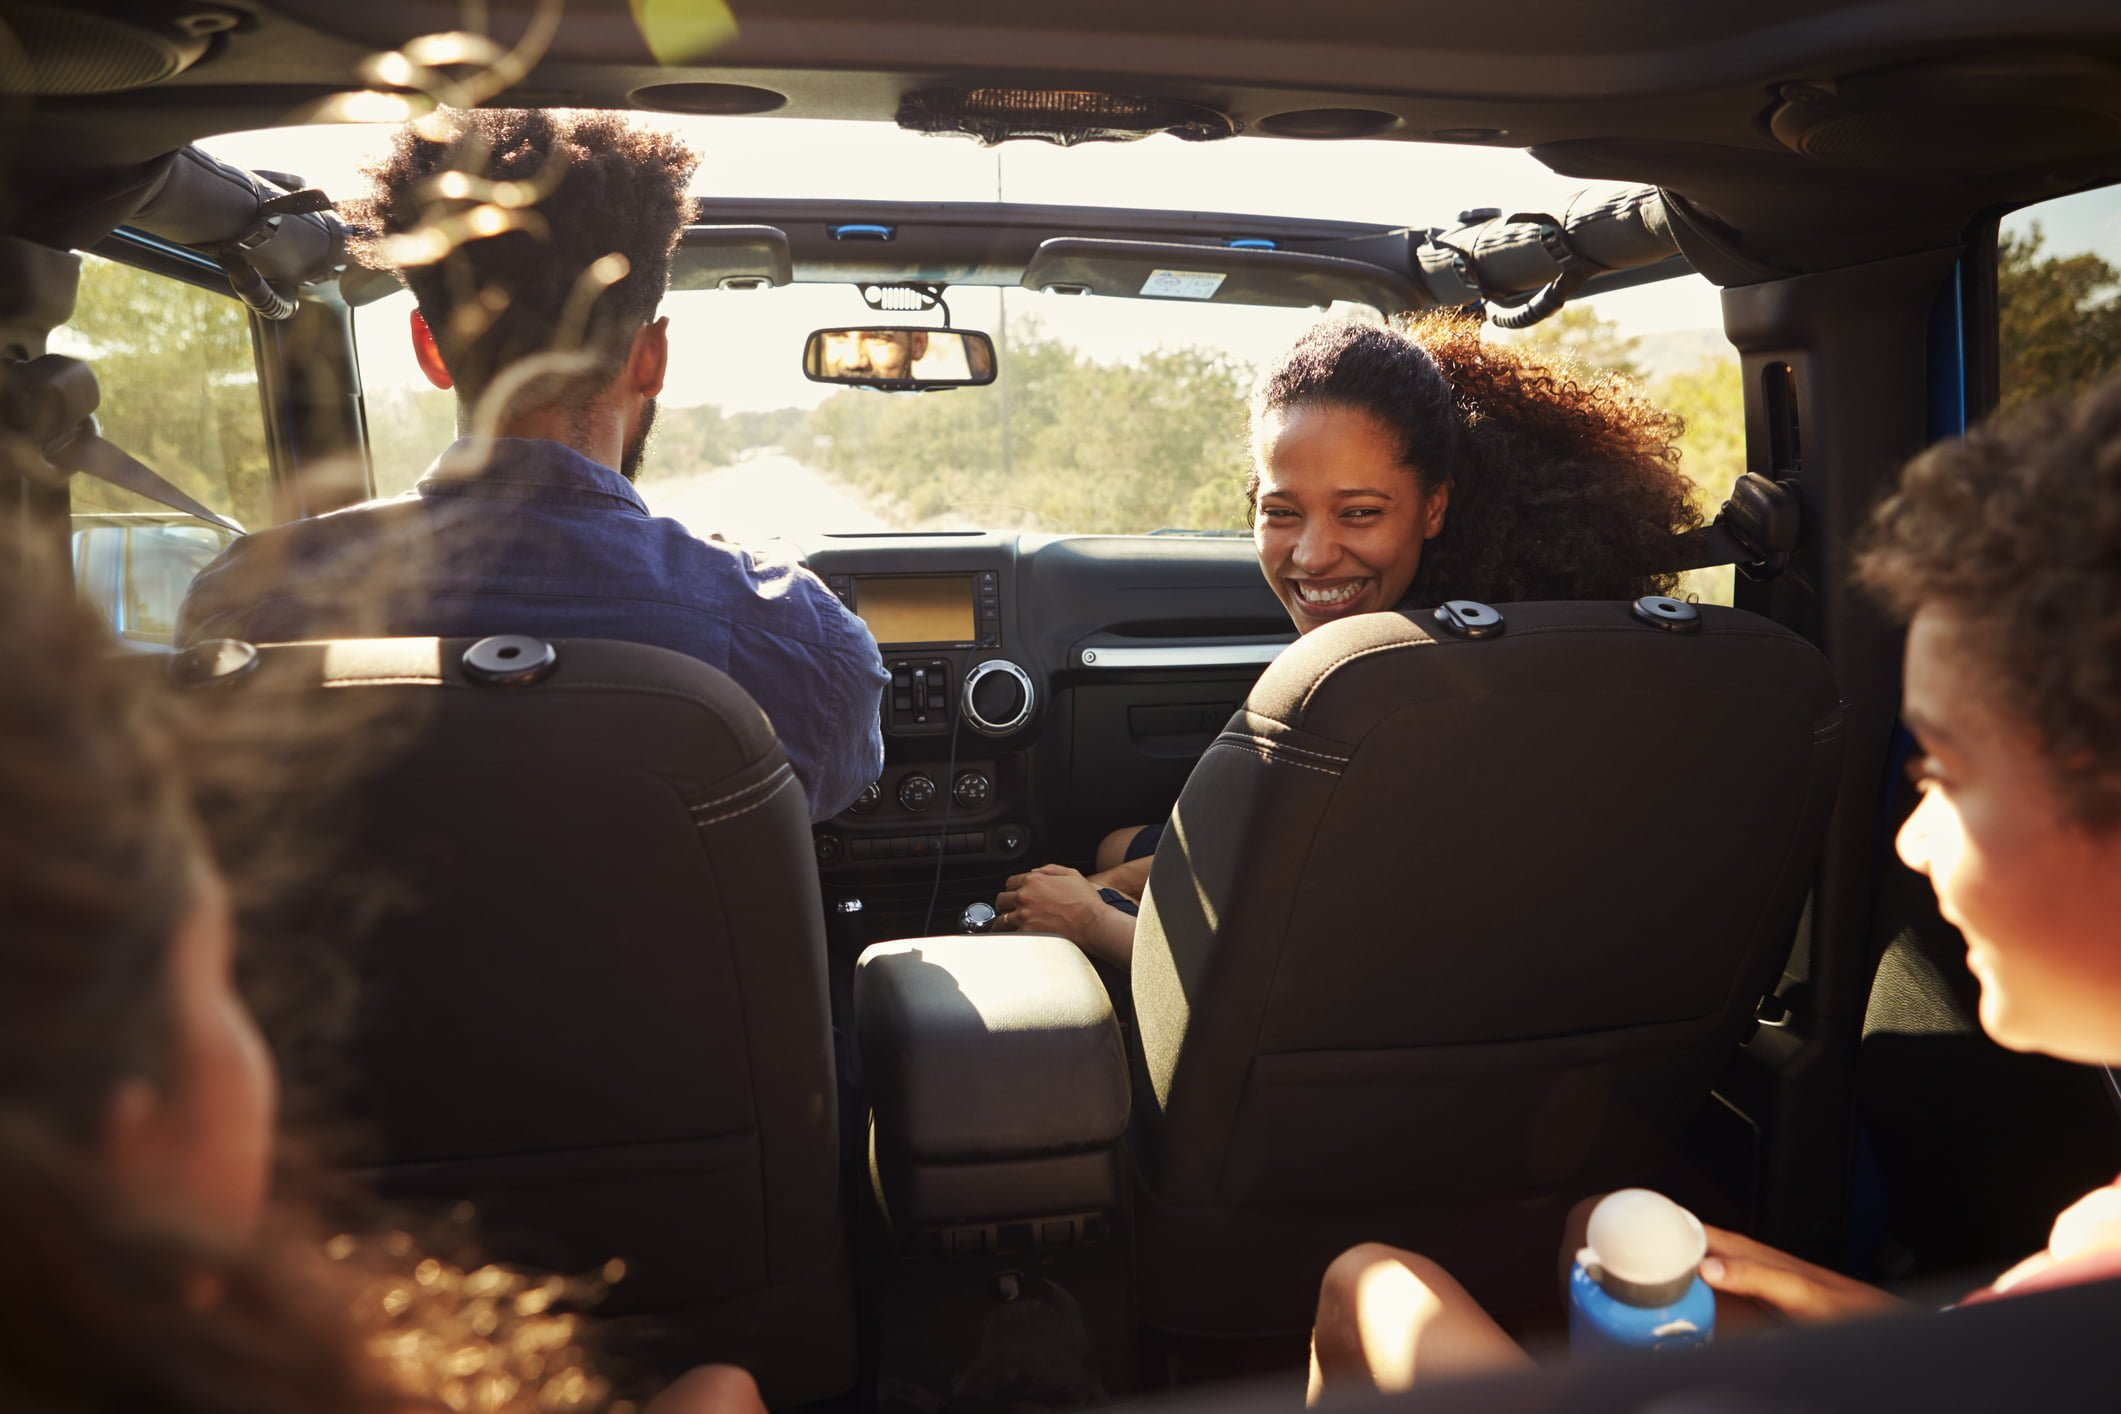 Excited family on a road trip in car, rear passenger